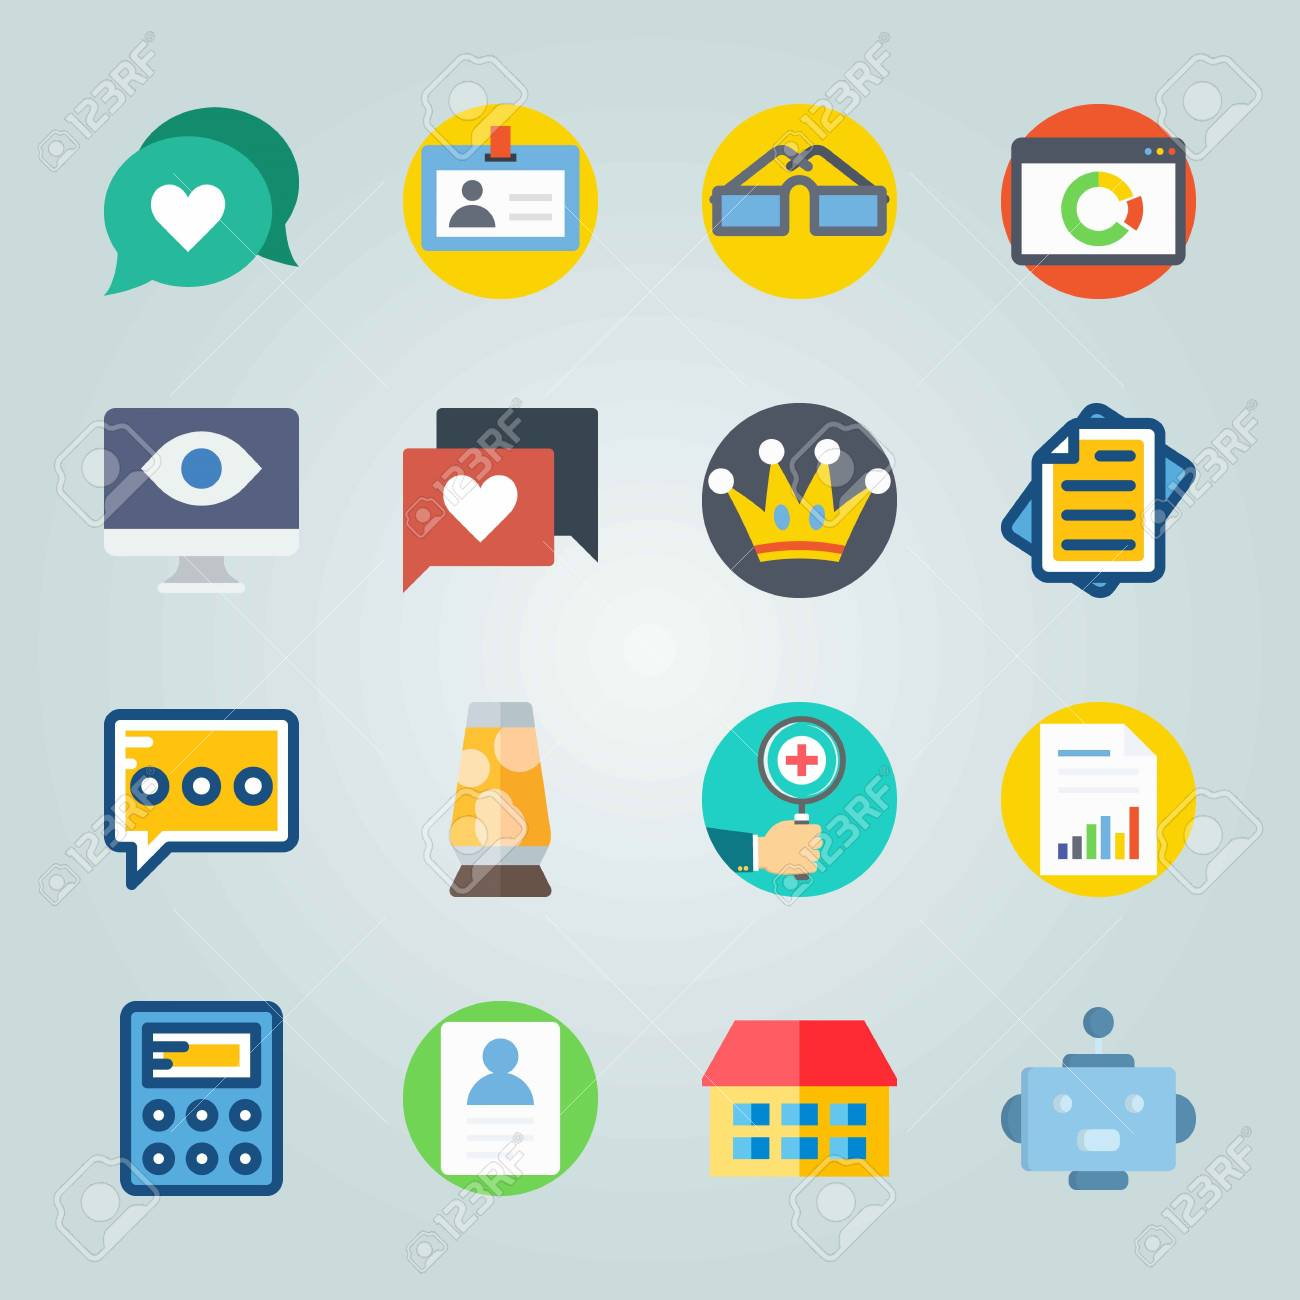 Icon set about Digital Marketing  with search engine, house and